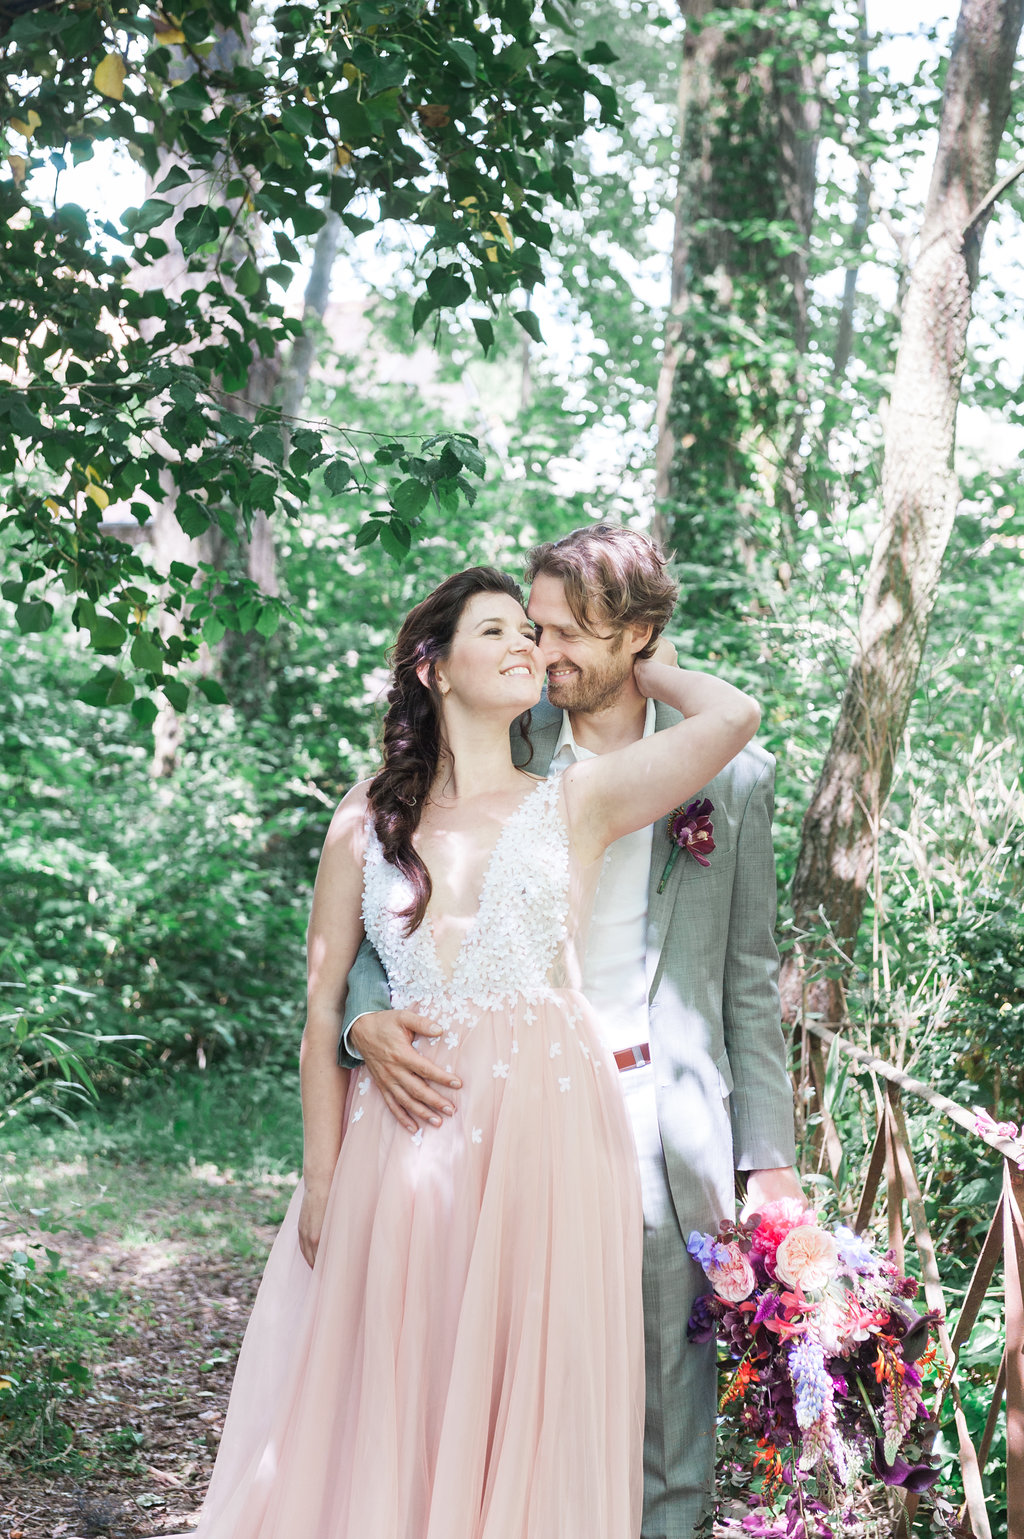 Dark Fairytale inspired Wedding - Wit Photography - Isle de L'Authie France - woods - pink wedding dress - Unielle Couture - flowers by edenique floral design